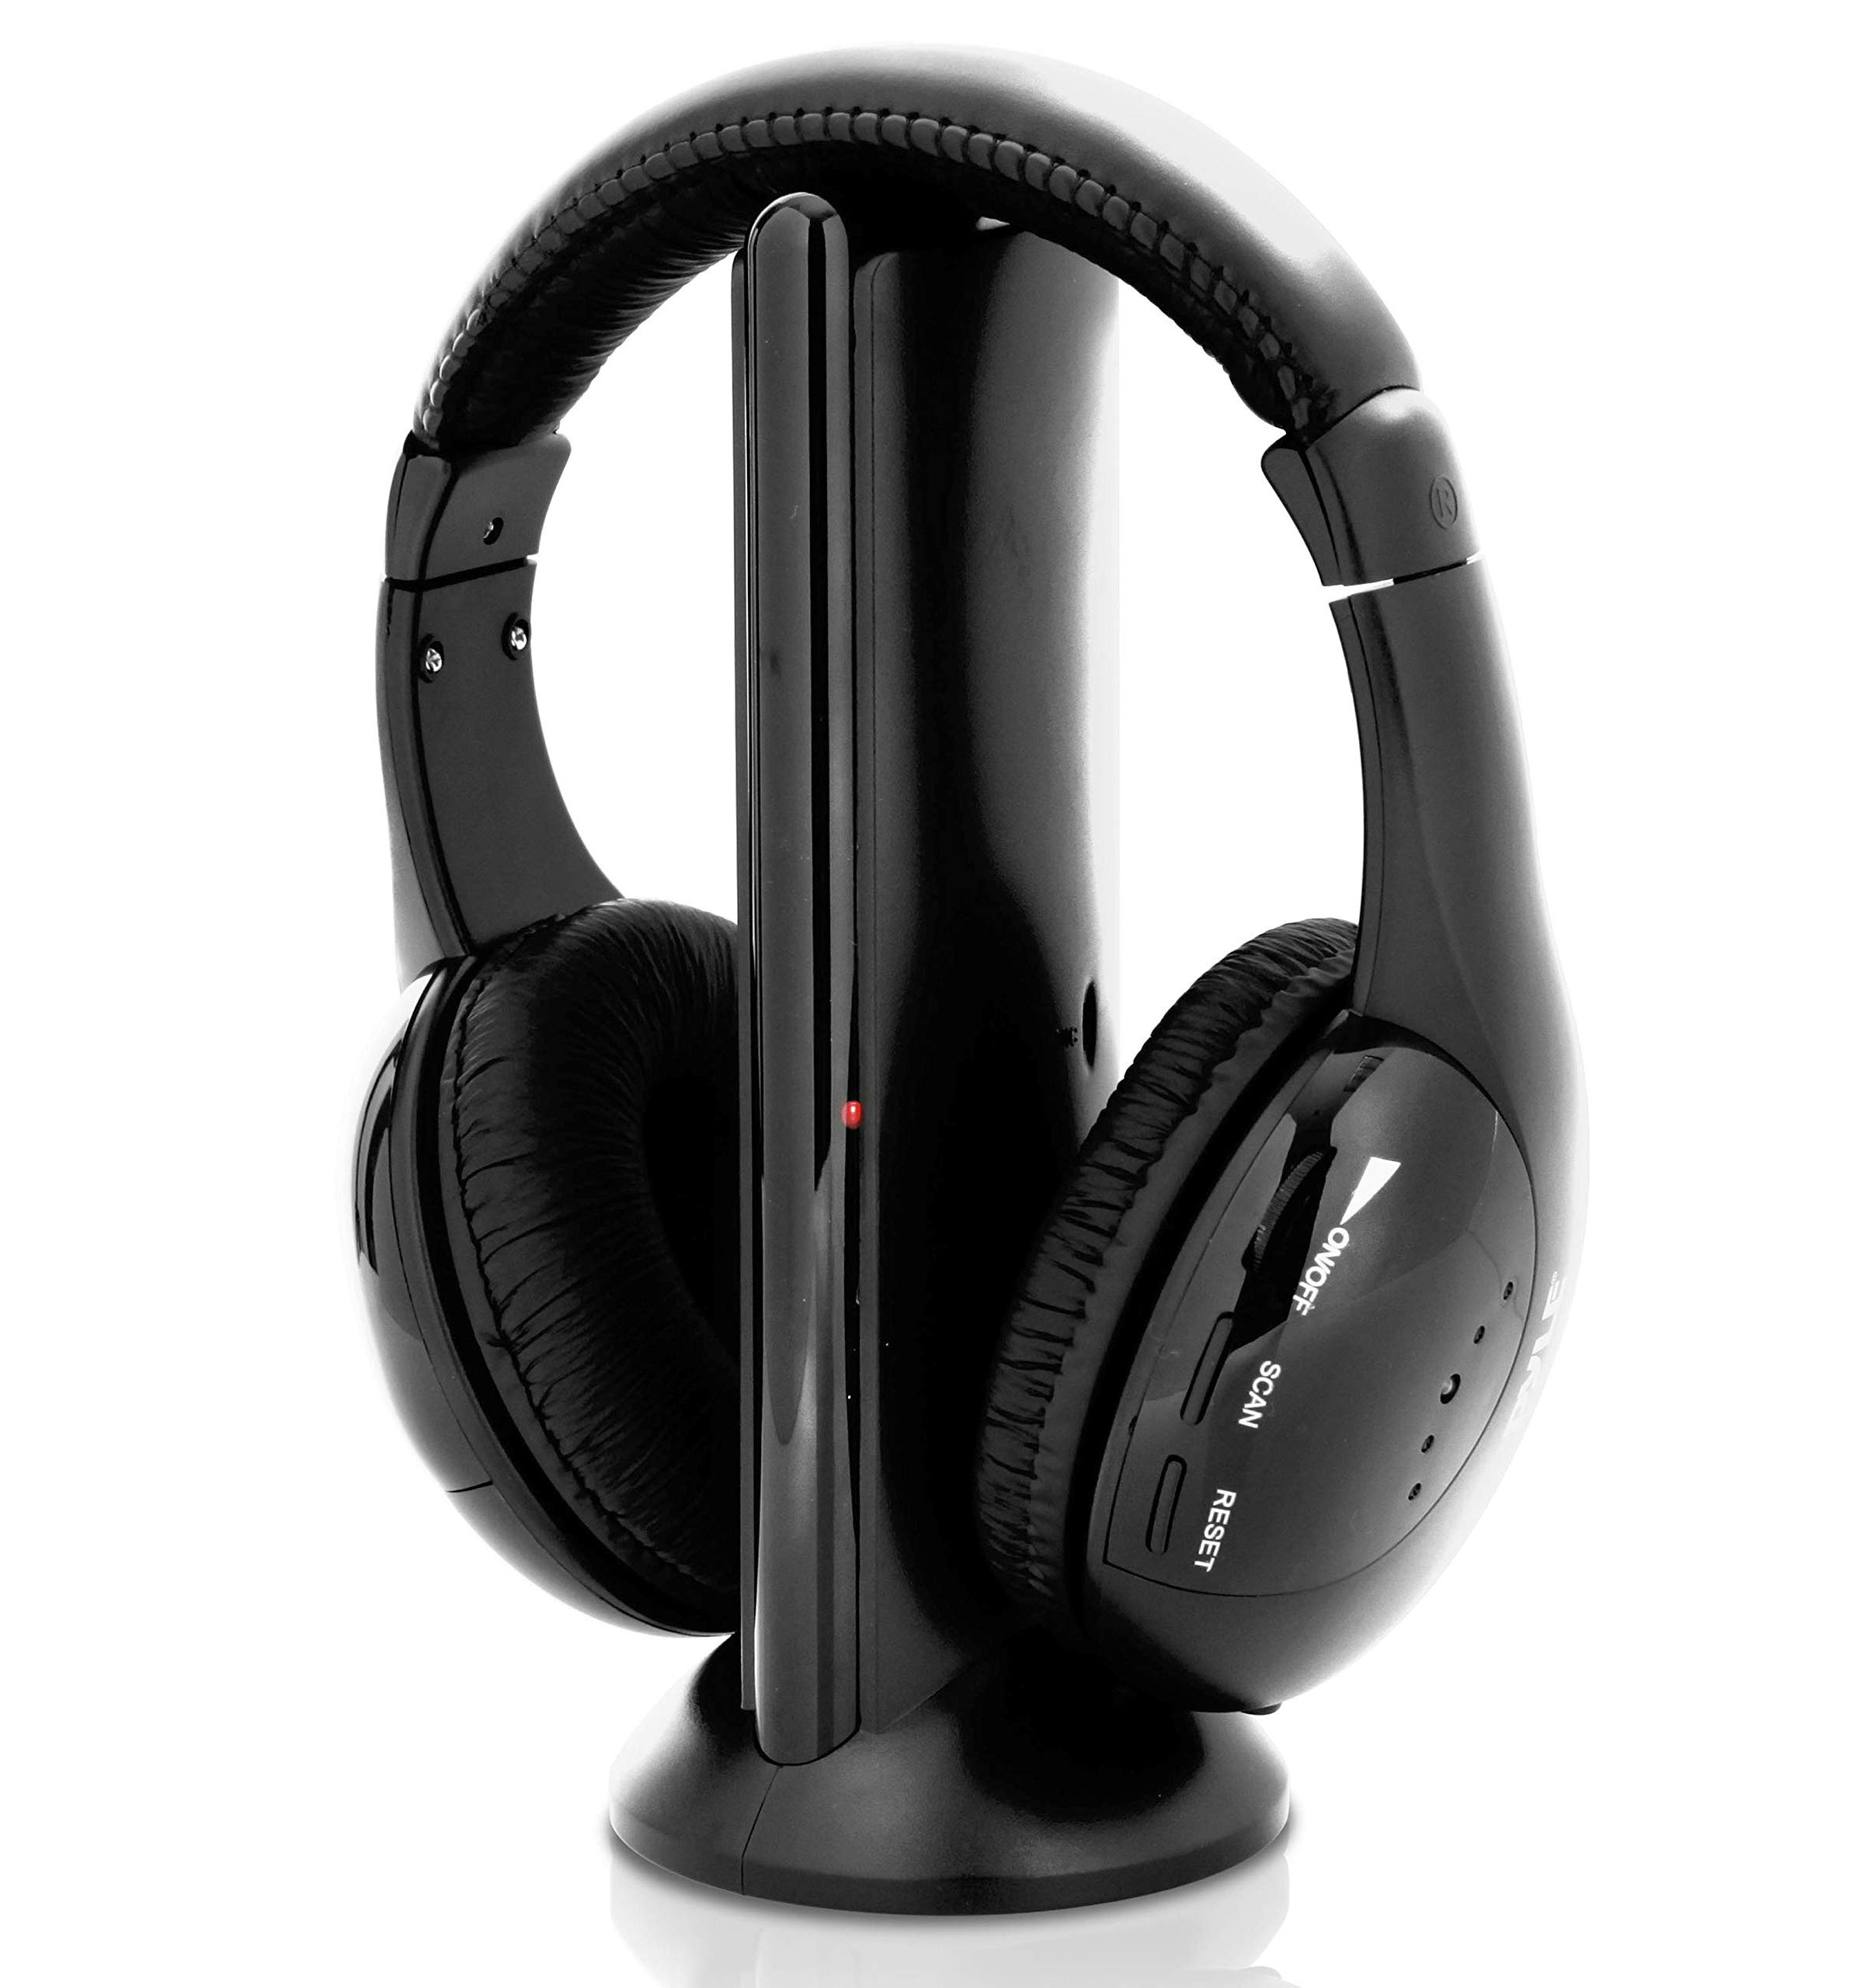 ASTROSOAR - Stereo Wireless Over Ear Headphones - Hi-fi Headphone Professional Black Monitor Headset with 30m Range, Noise Isolation Padding, Microphone - TV, Computer, Gaming Console iPod Phone - Pyle Home PHPW5